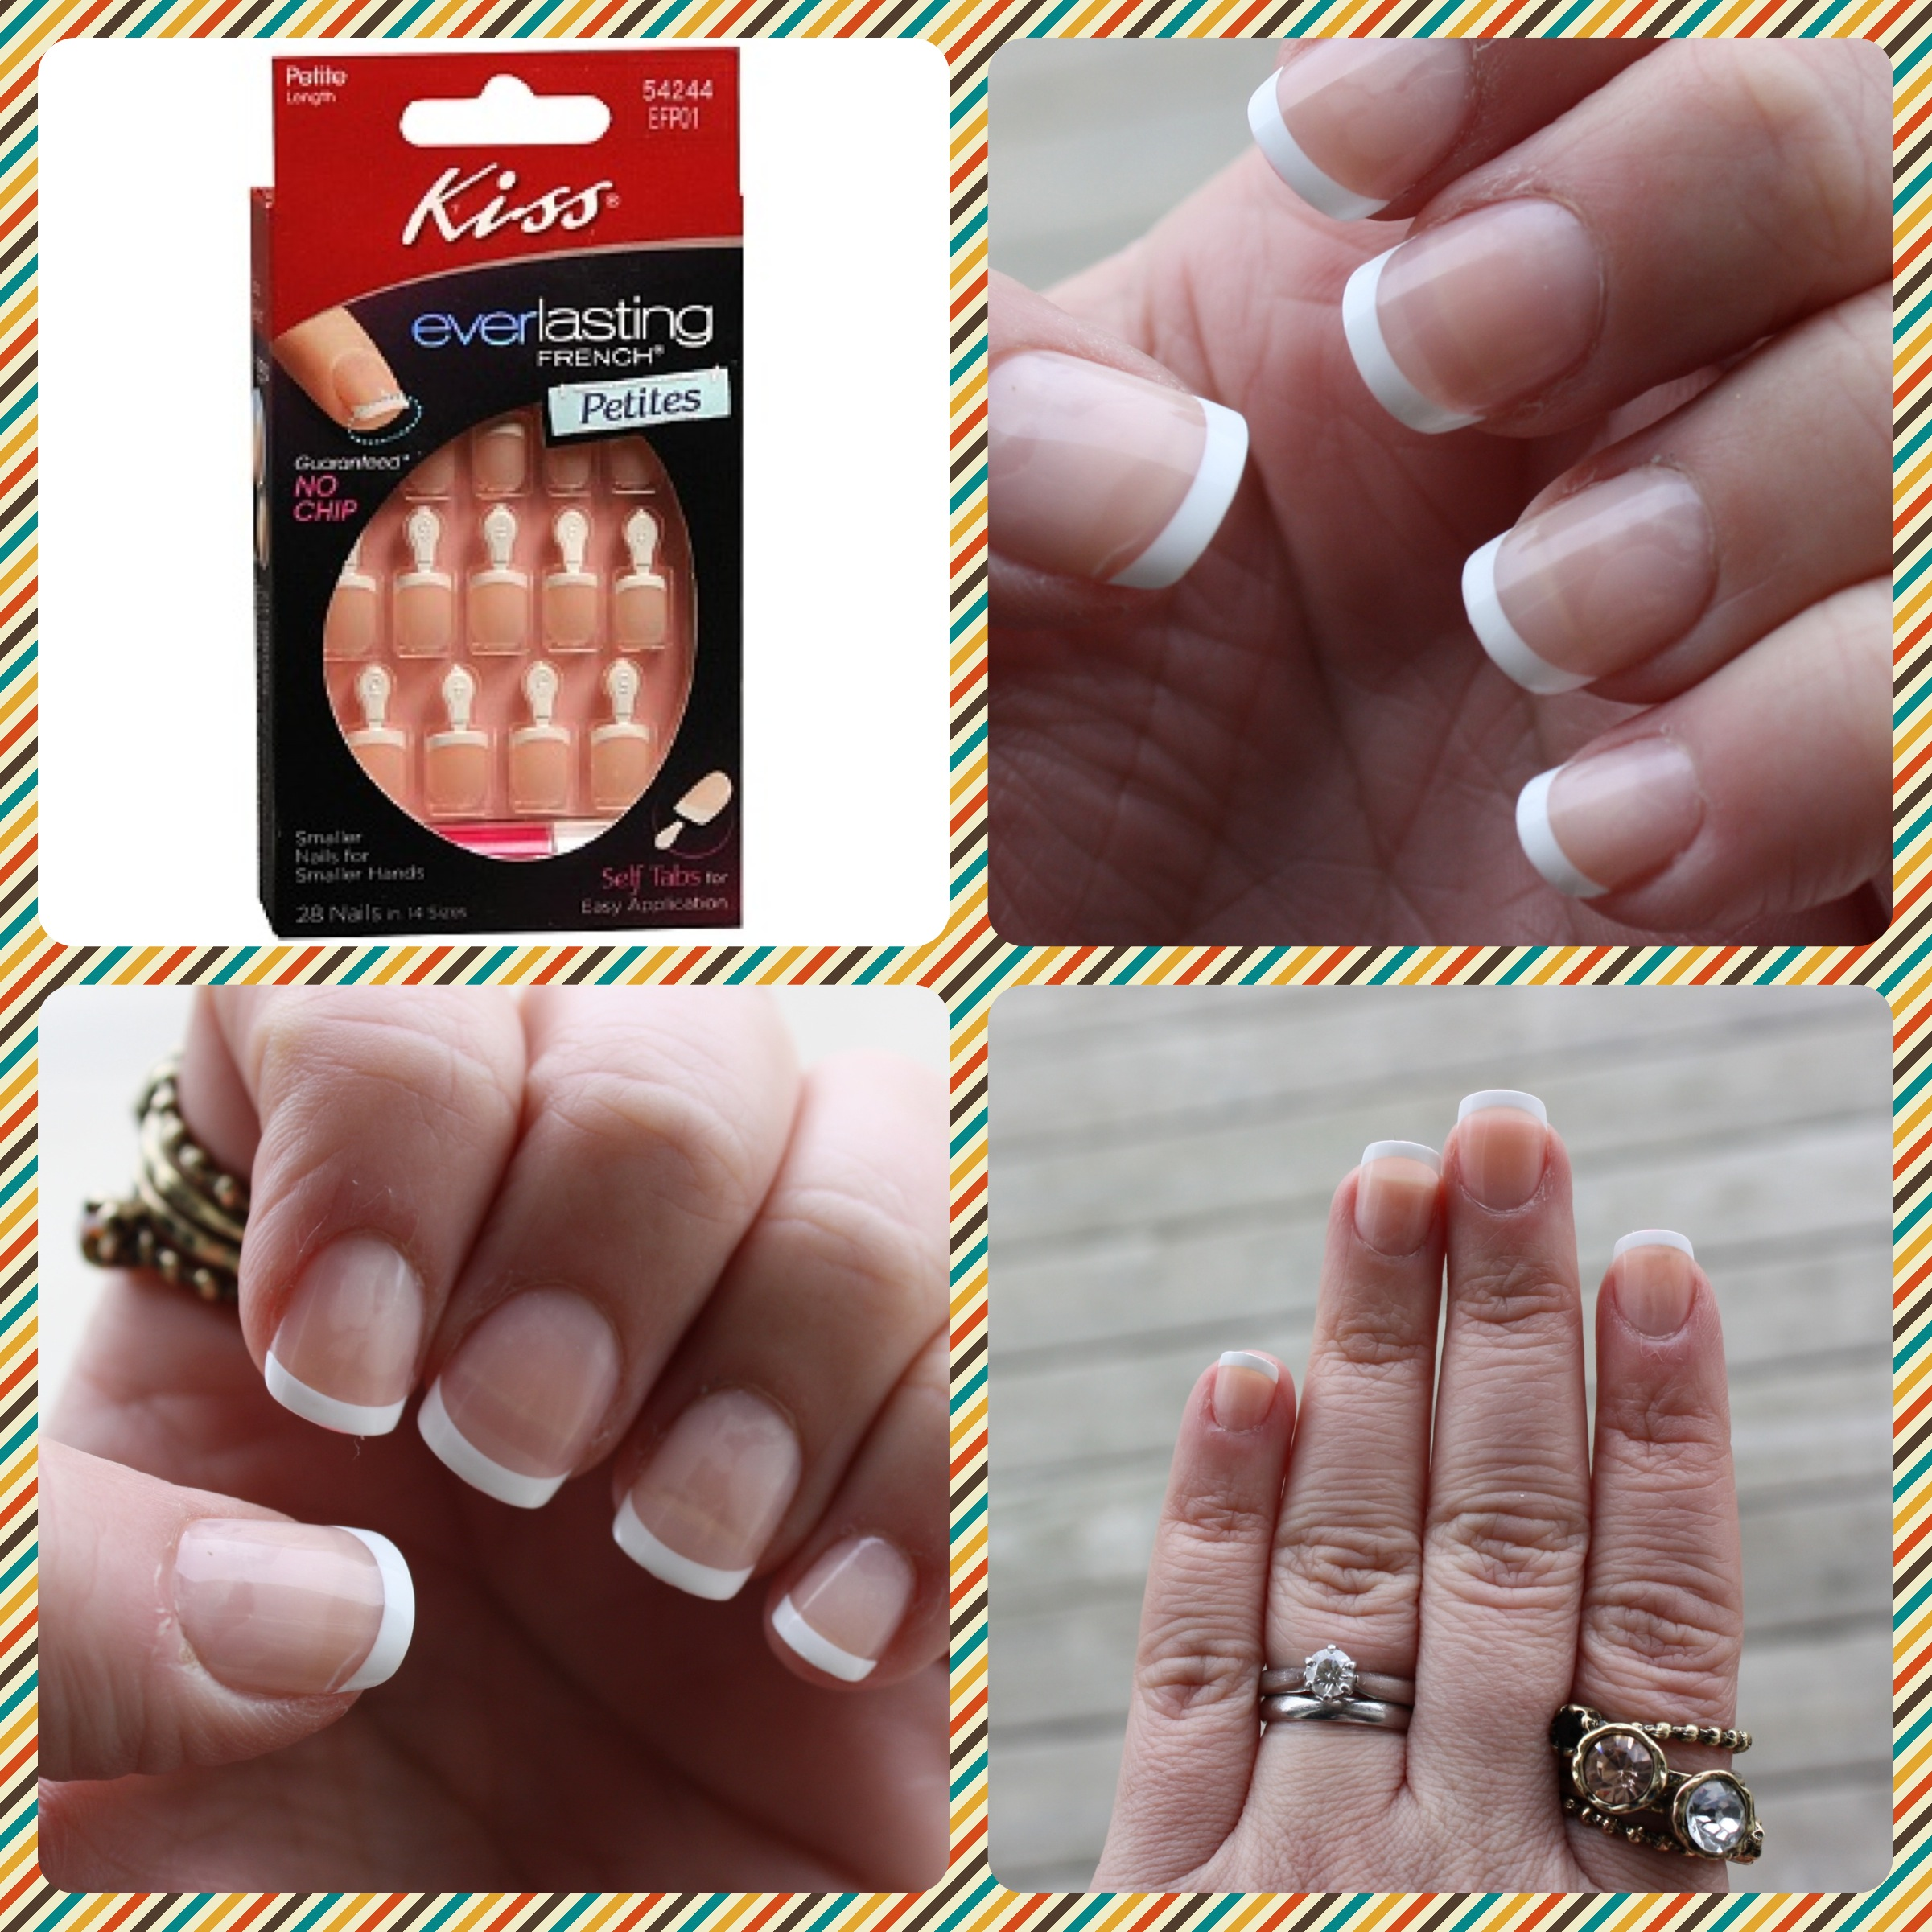 Kiss Everlasting French Petites Nails – horrendous color